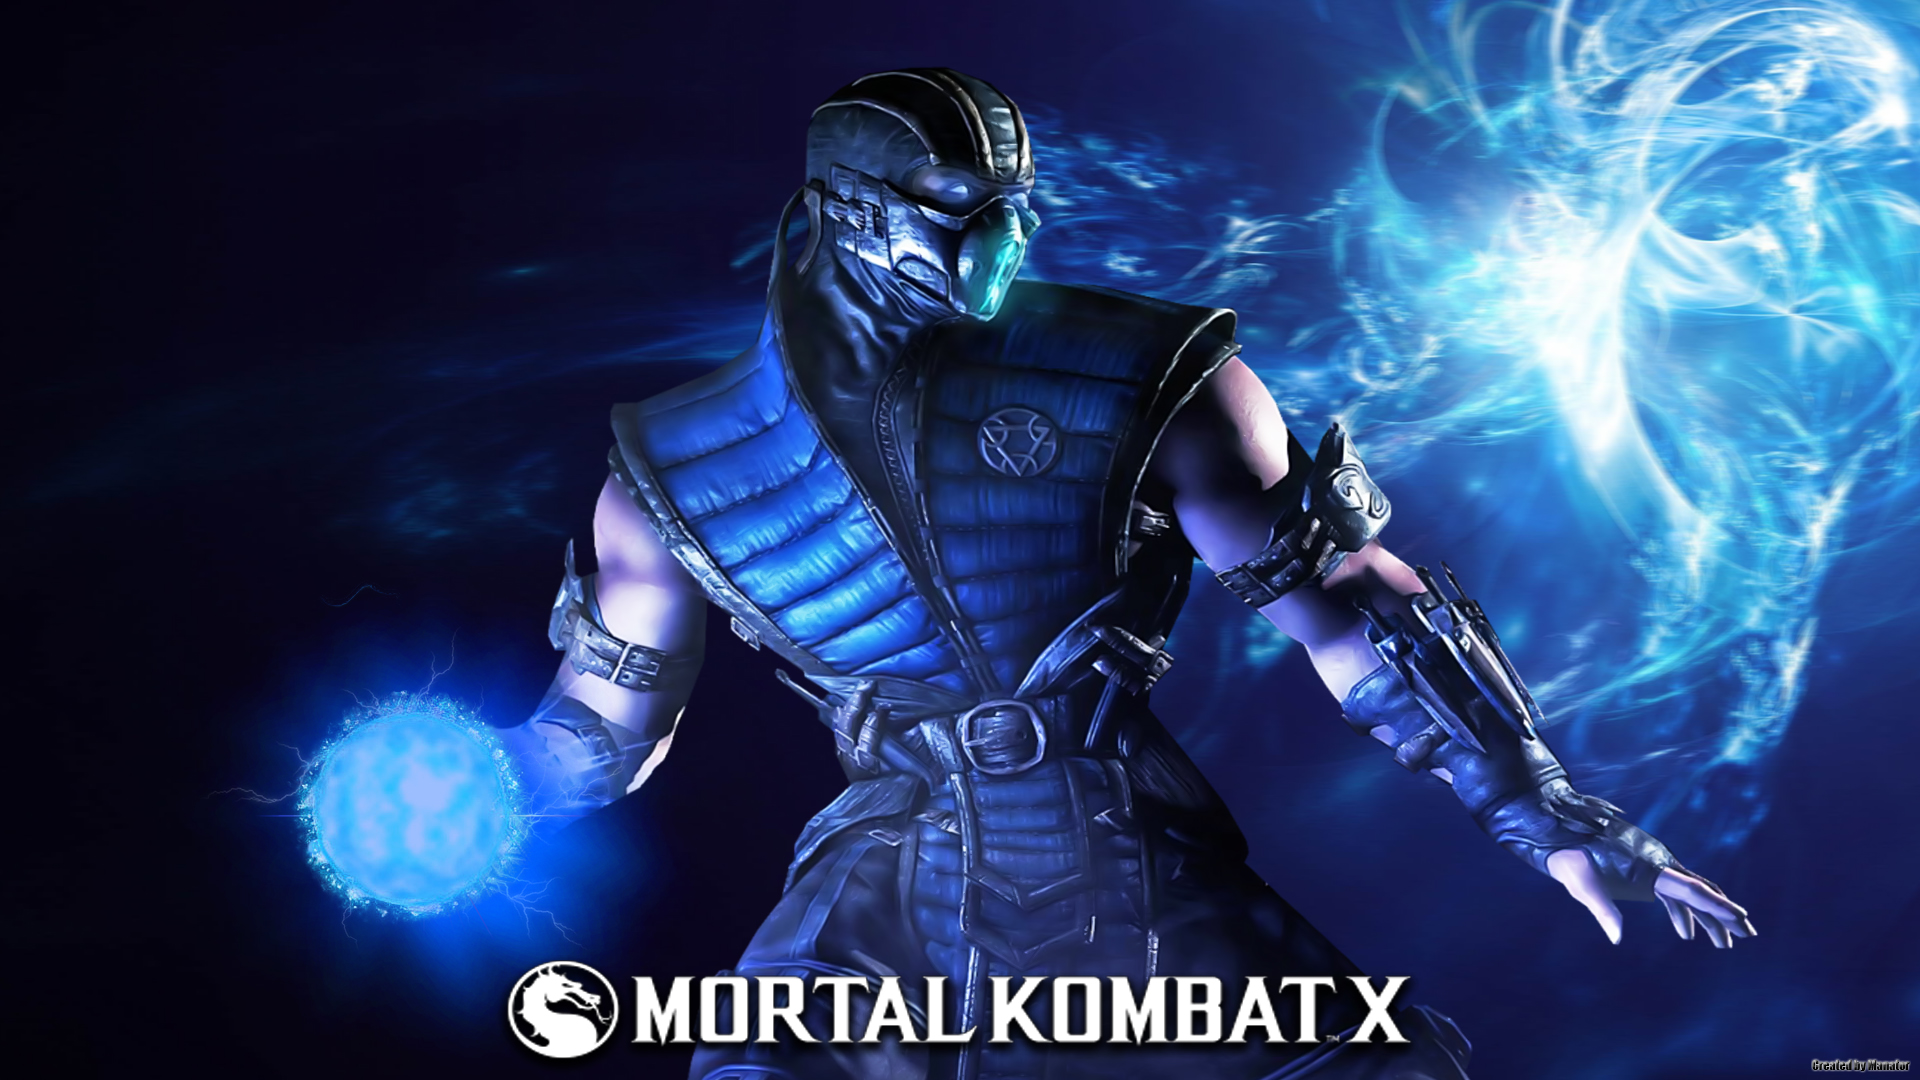 Free Download Mortal Kombat X 1920x1080 For Your Desktop Mobile